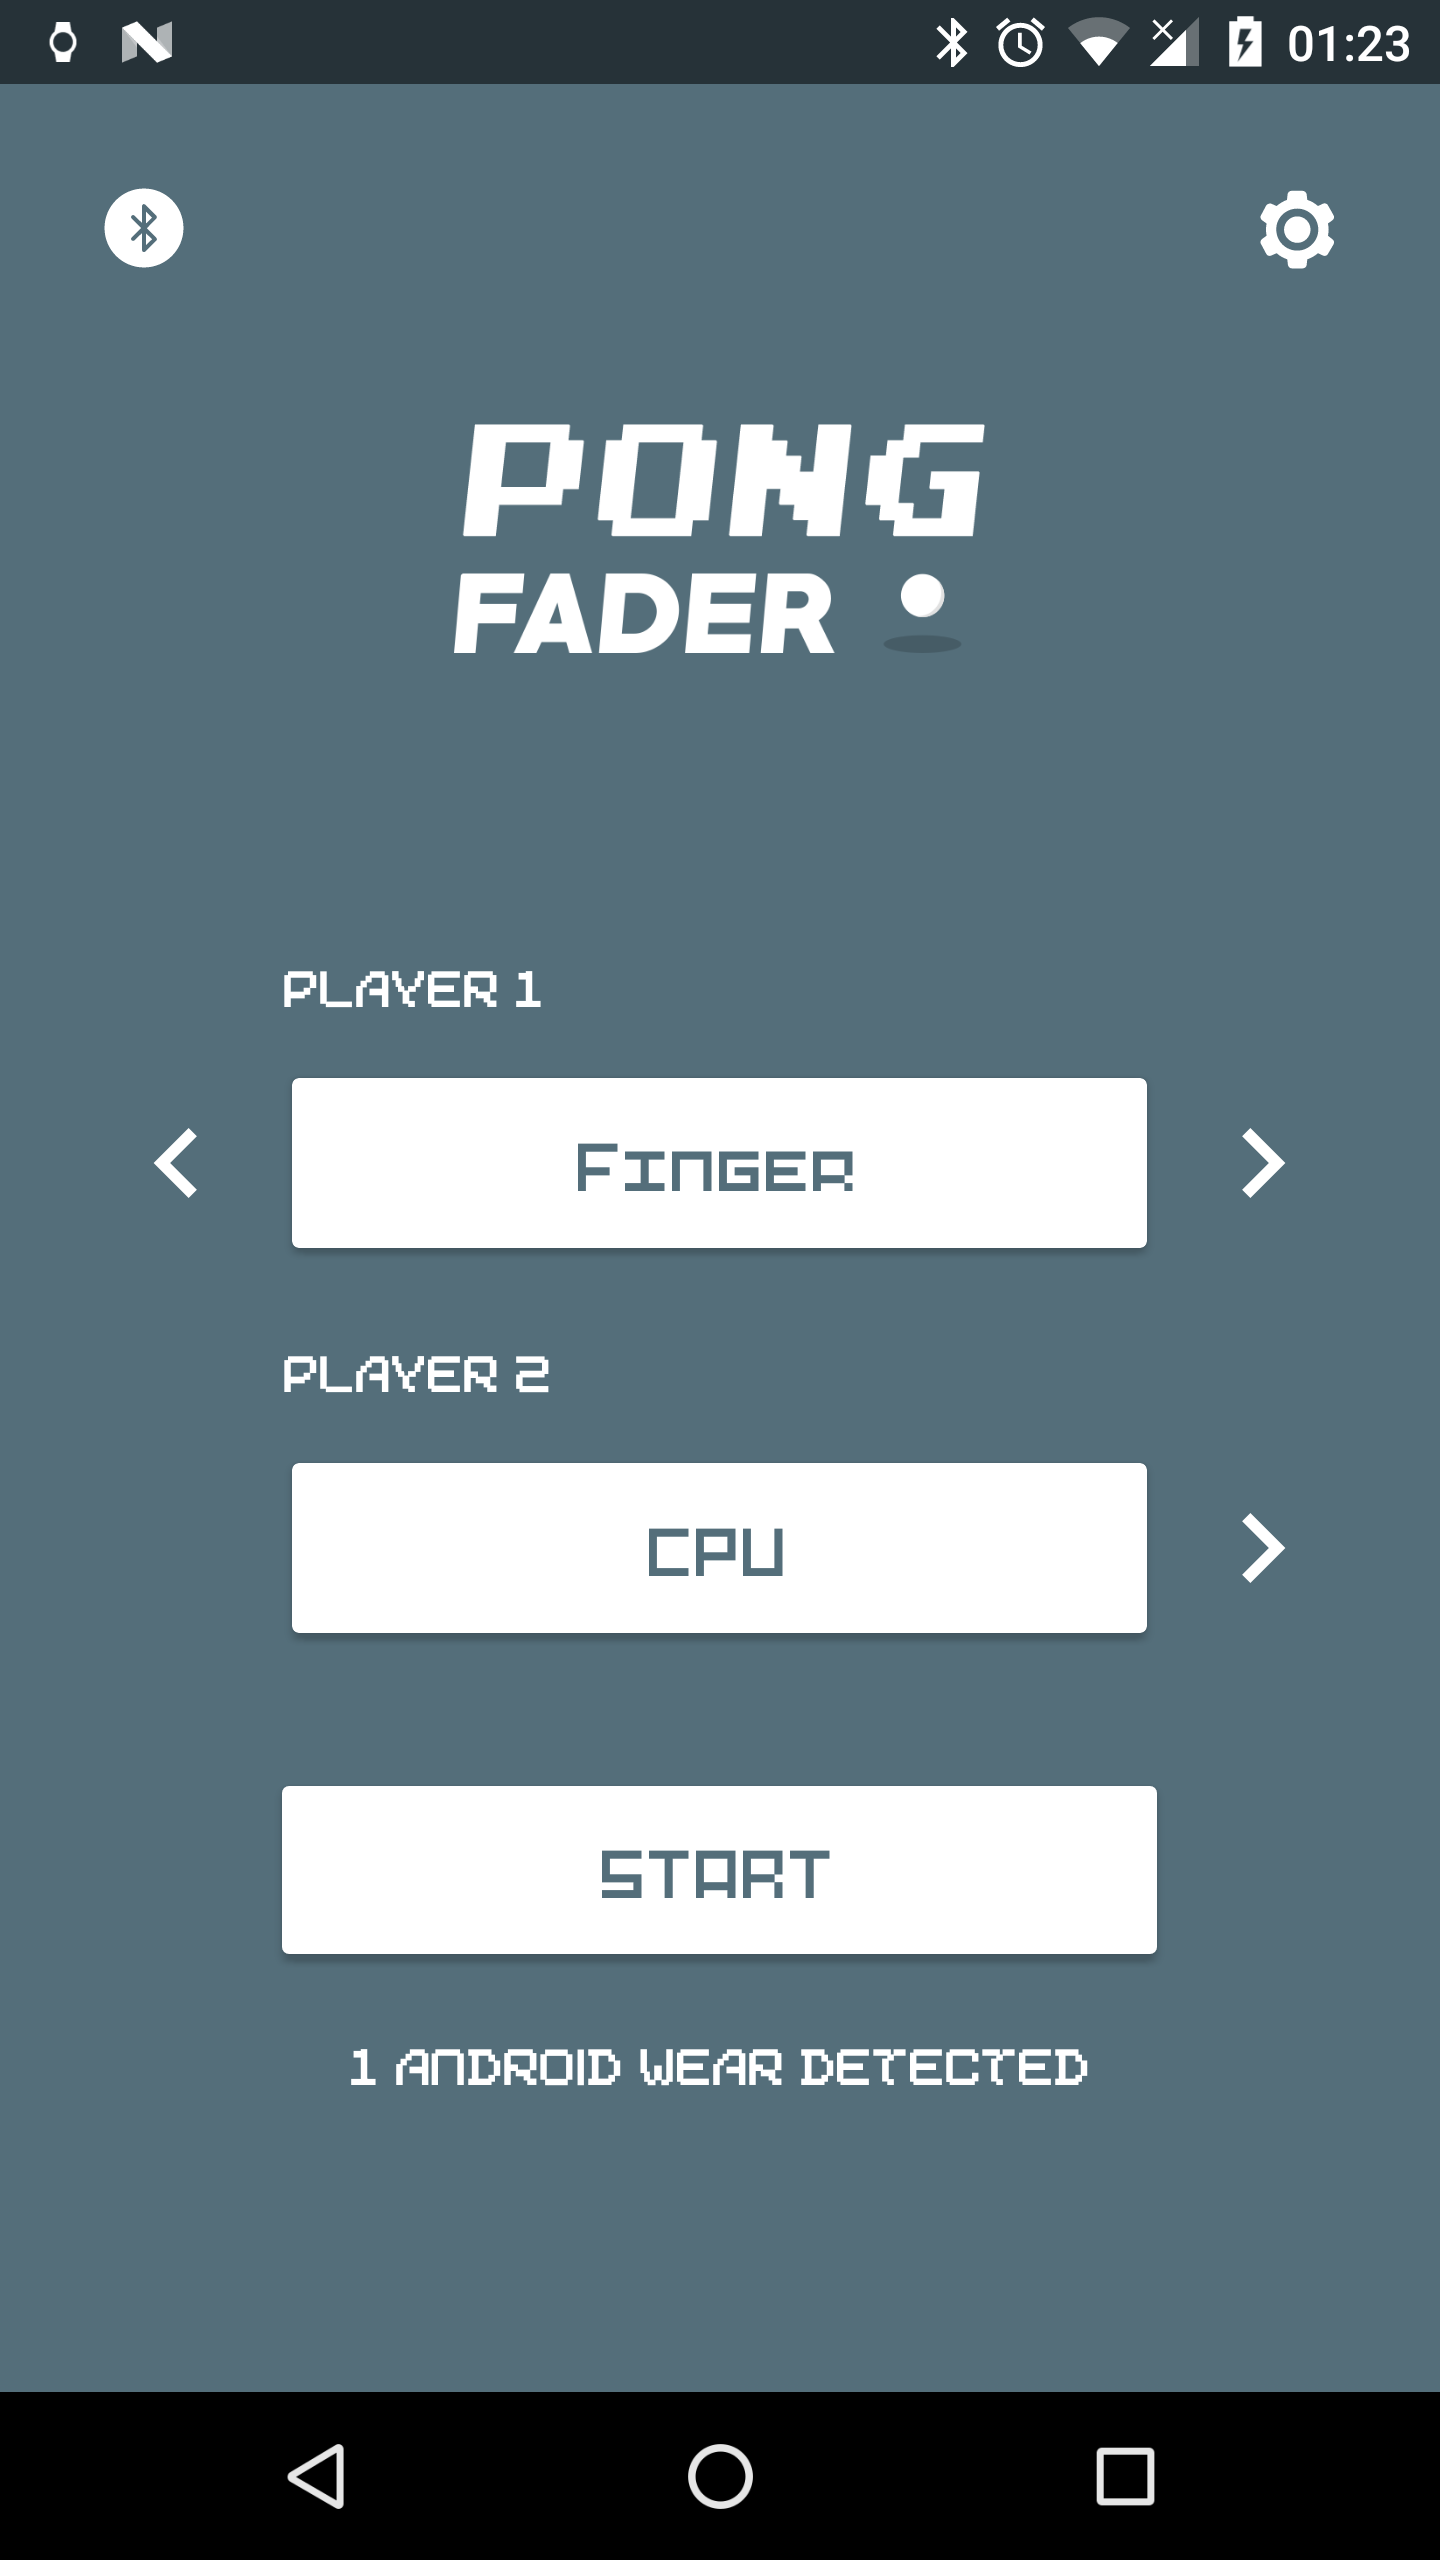 Pong Fader - 1 or 2 players